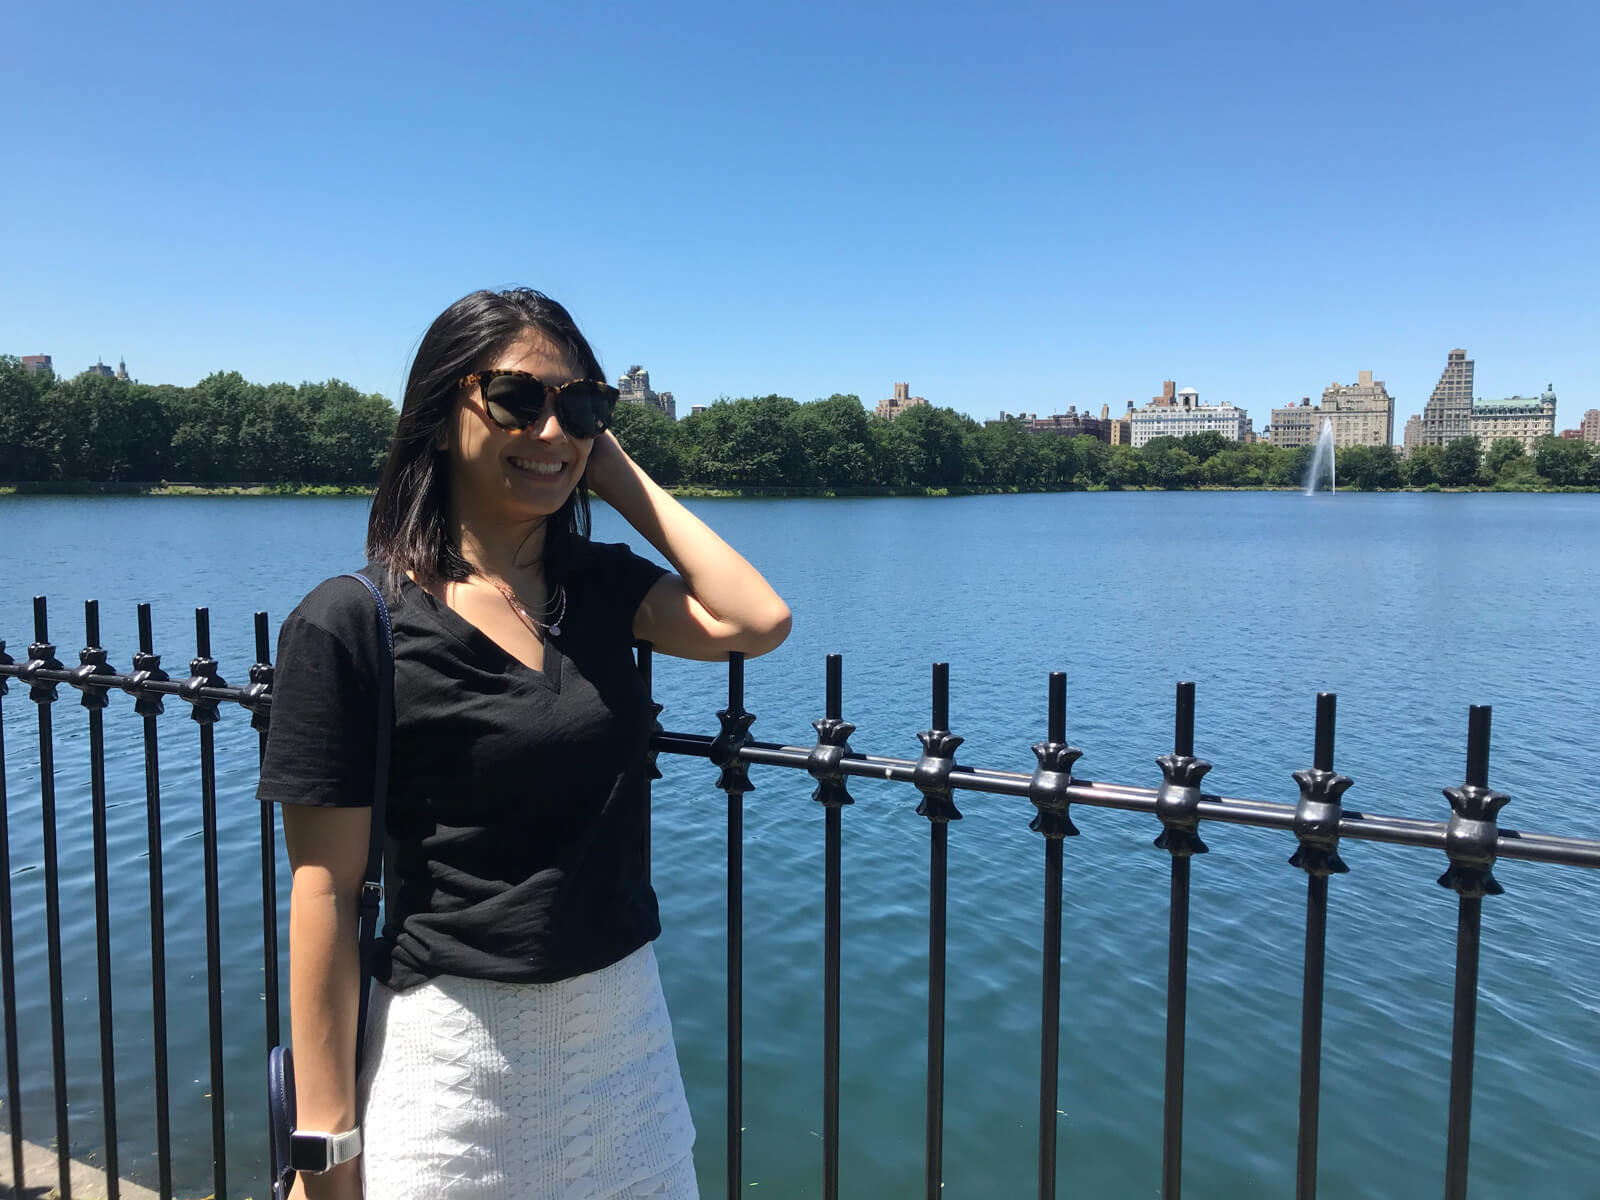 A woman wearing sunglasses, a black t-shirt and white skirt, standing by a black fence. In the background is a large lake and buildings and trees further into the distance